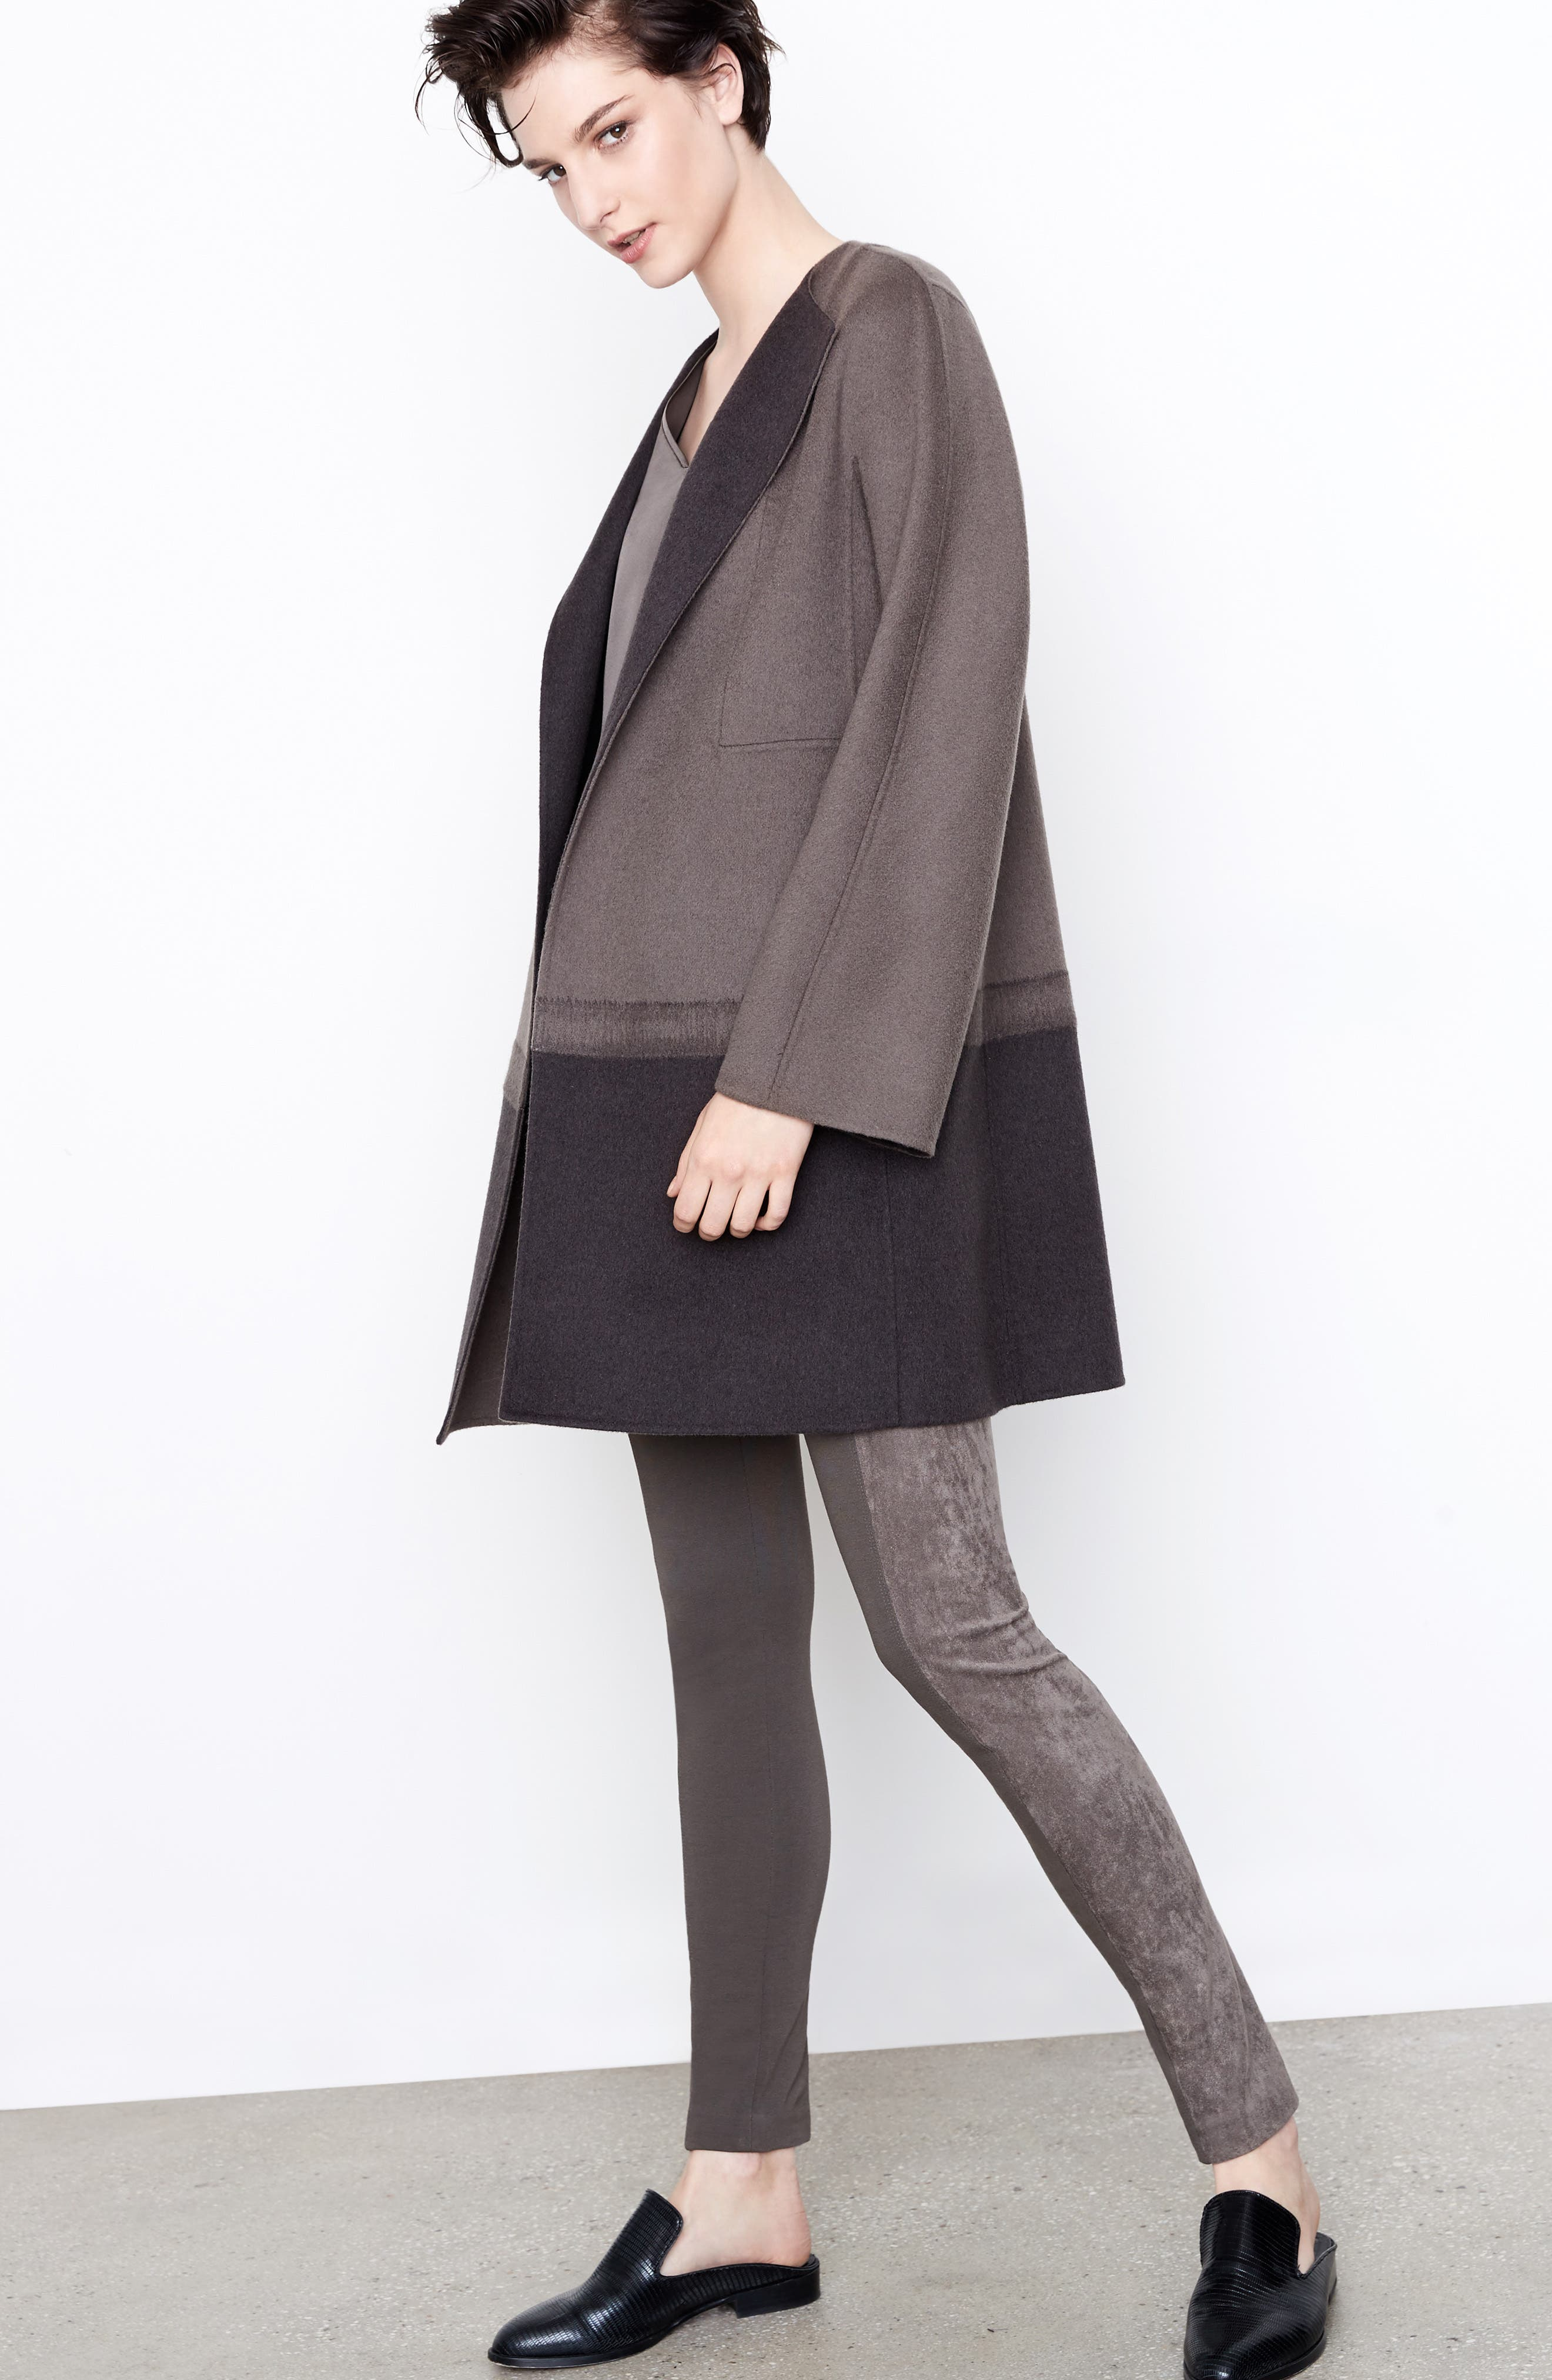 Lafayette 148 New York Coat, Blouse & Leggings Outfit with Accessories